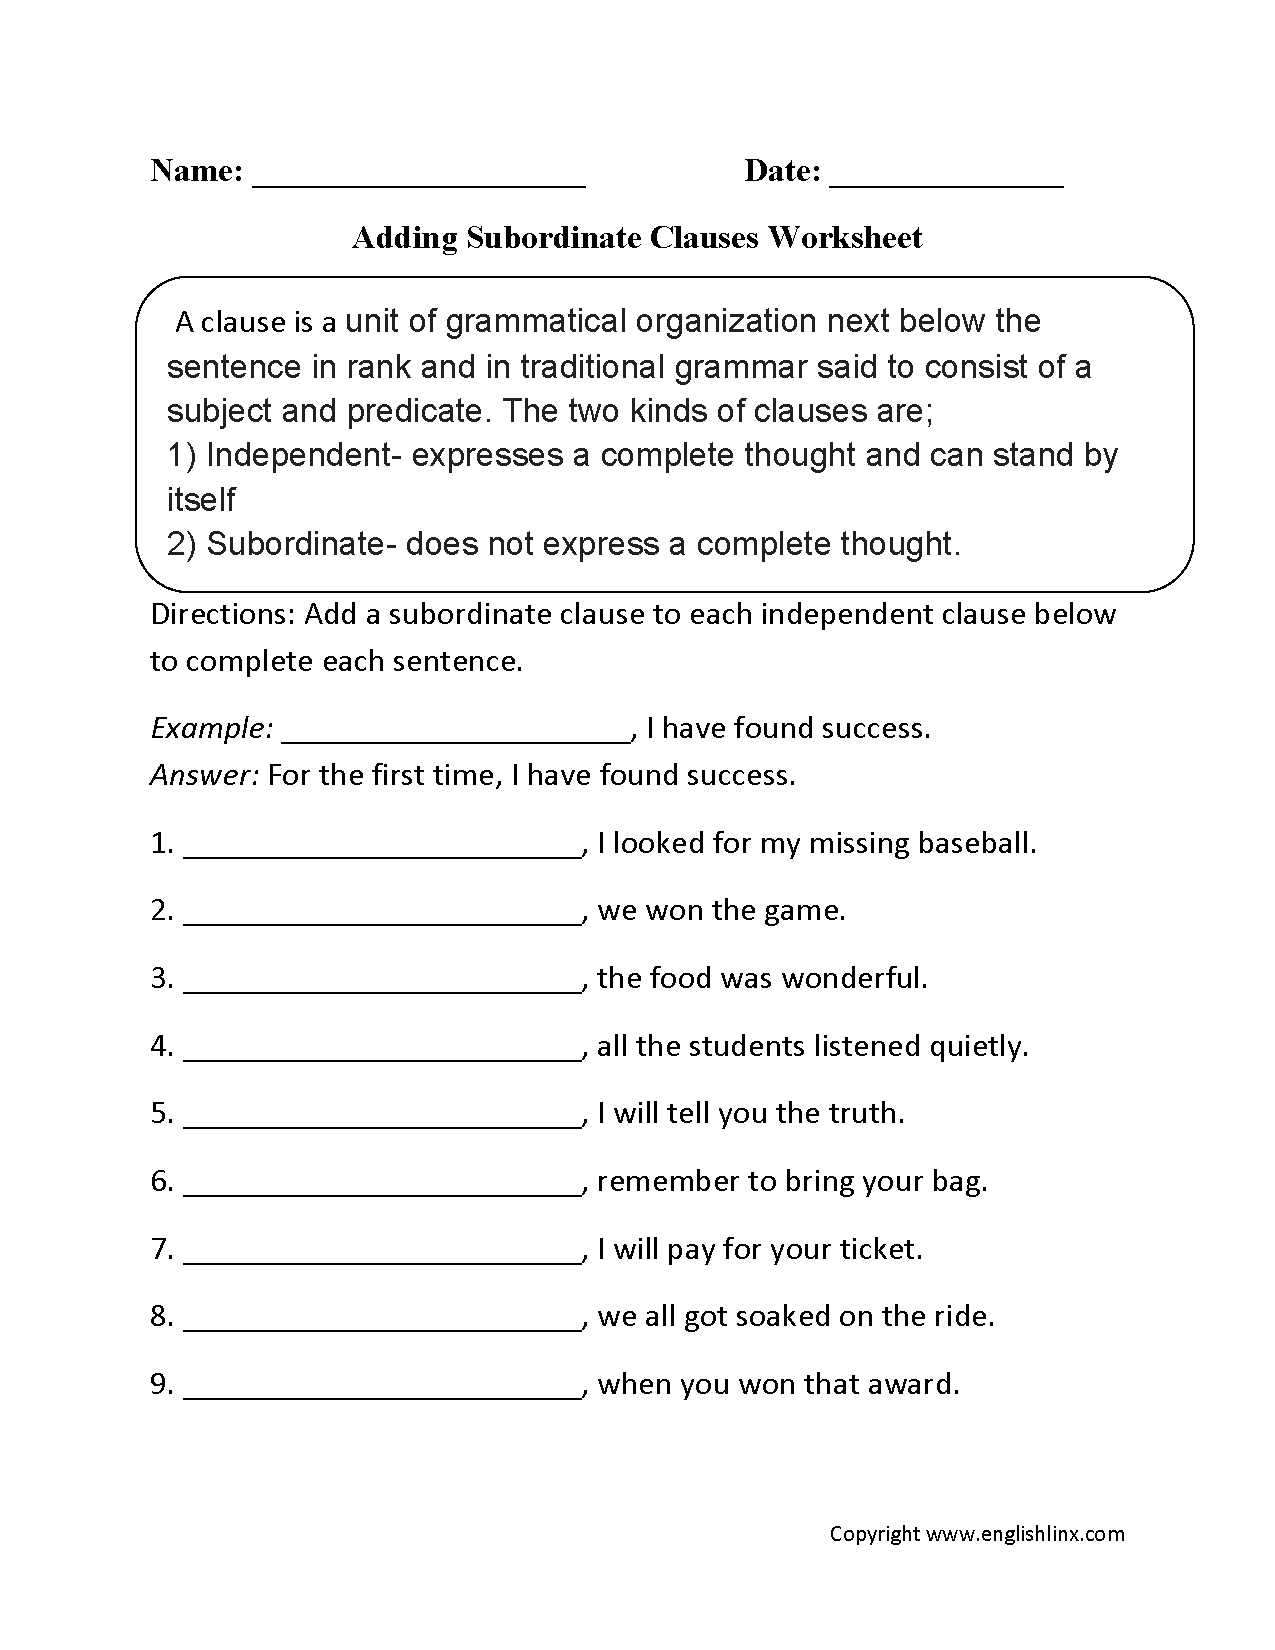 Worksheets Catcher In The Rye Worksheets adding subordinate clauses worksheet writing pinterest these worksheets are great for working with use the beginner intermediate or advanced lev